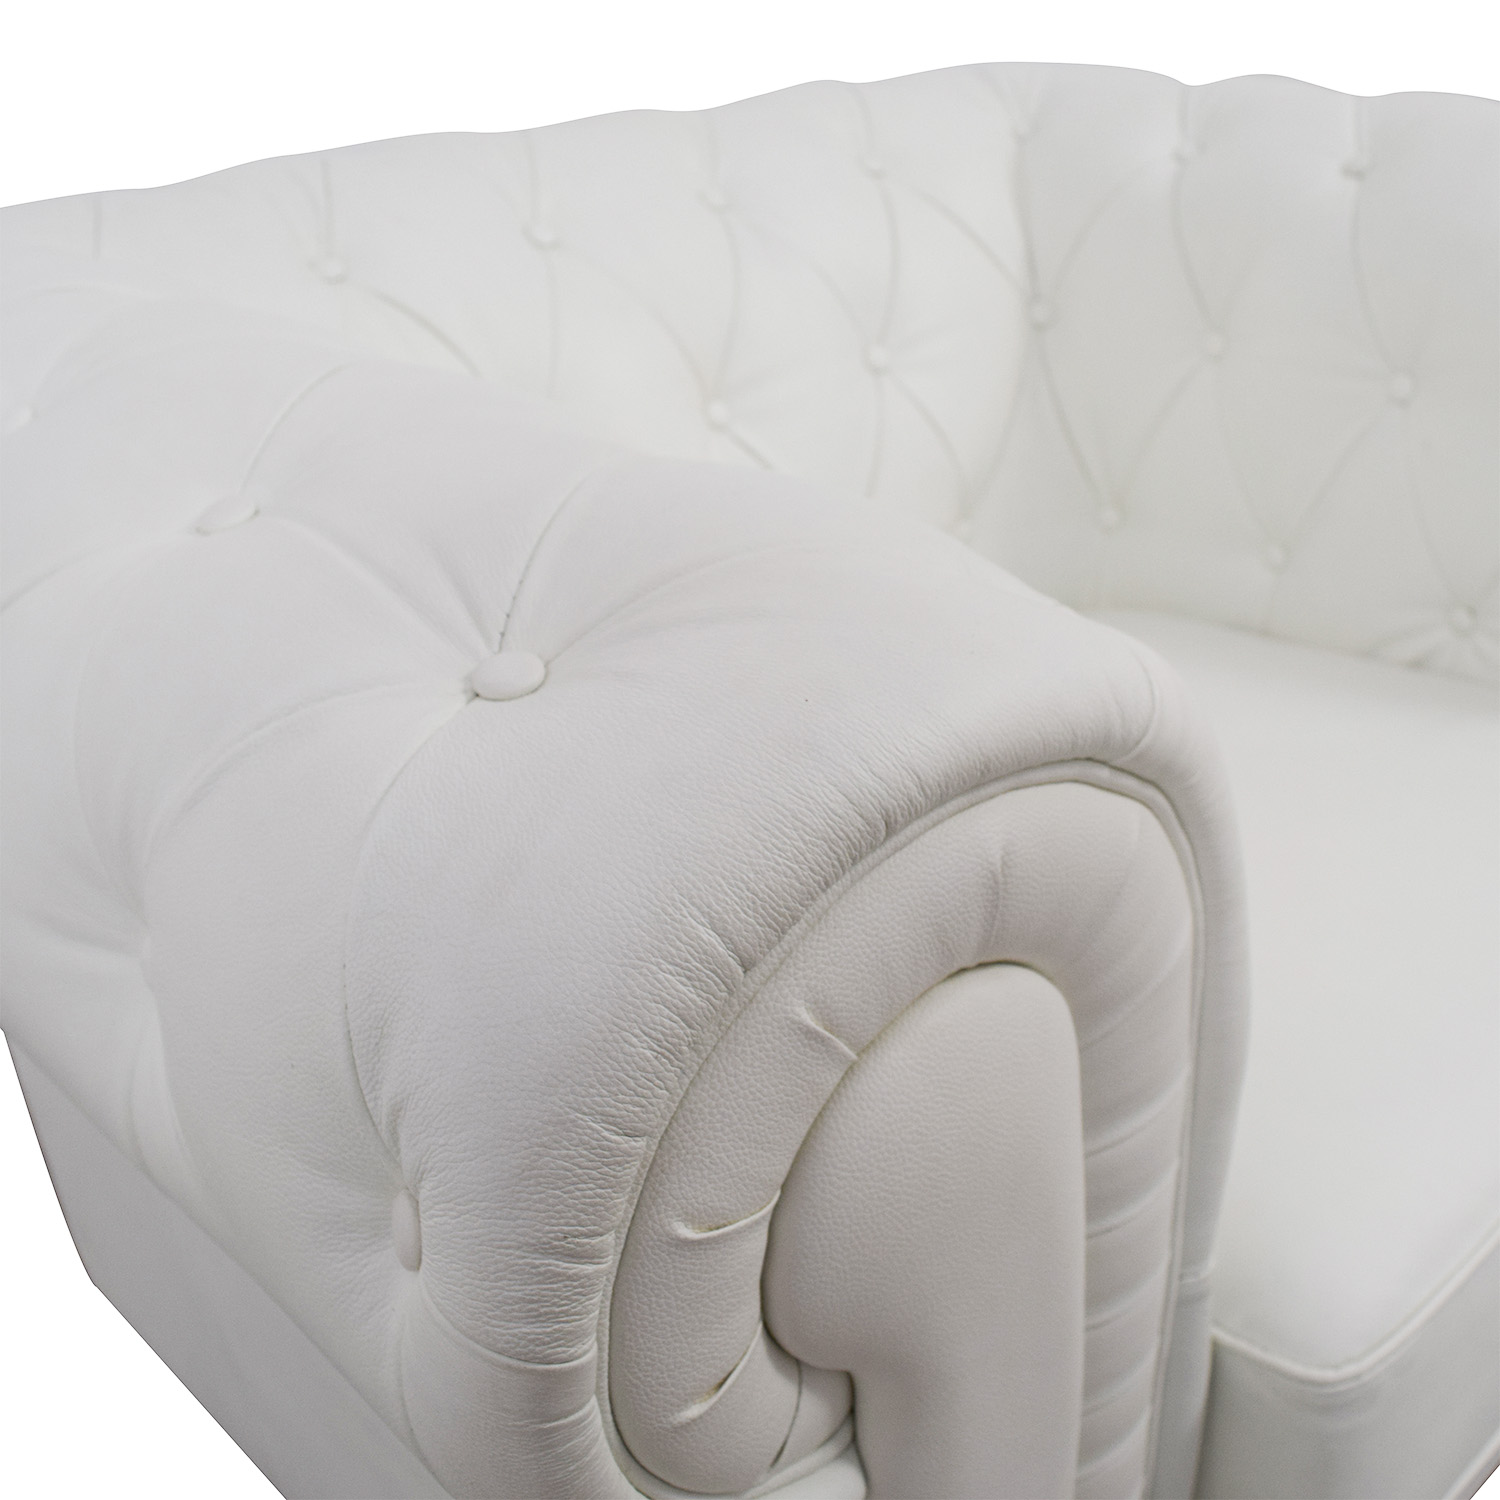 buy Chesterfield Tufted White Leather Accent Chair Accent Chairs